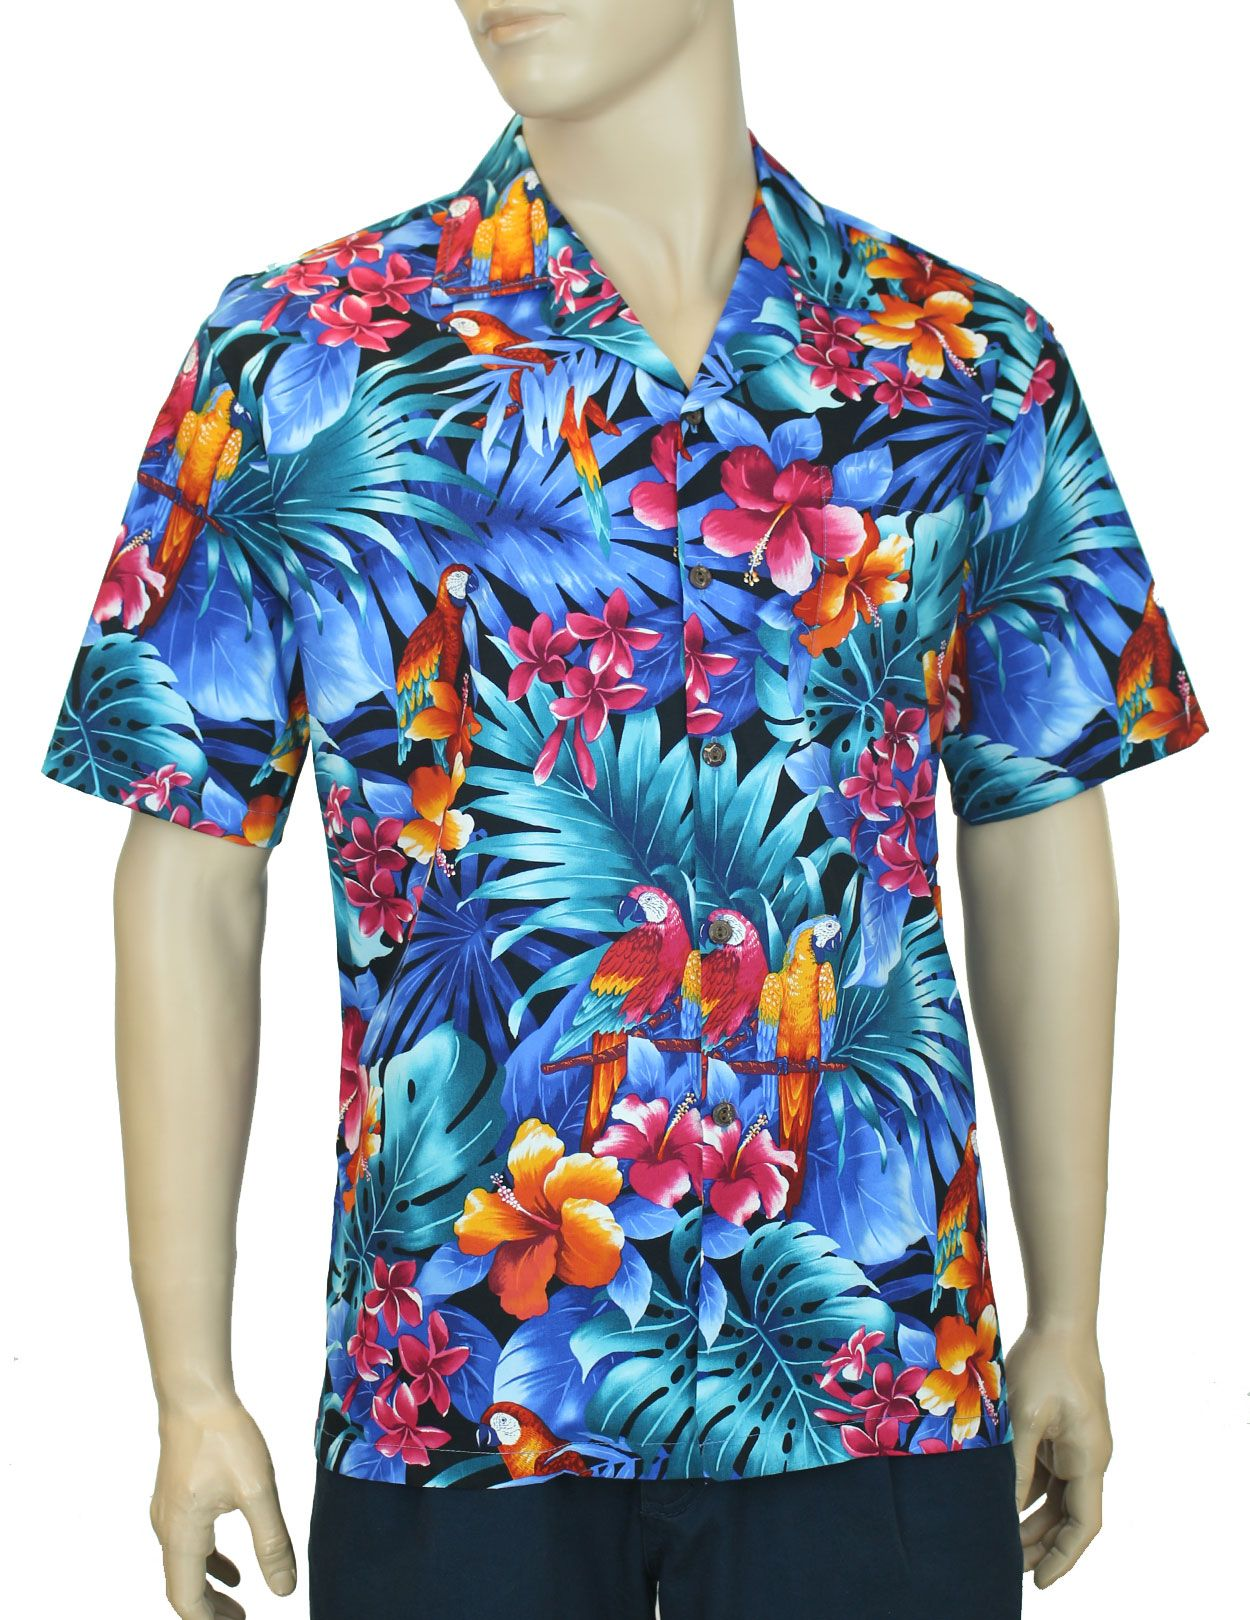 535262e8c Check out the deal on Brazilian Forest Tropical Parrots Aloha Shirt at Shaka  Time Hawaii Clothing Store #hawaiianshirt #shirts #hawaiianshirts # alohashirt